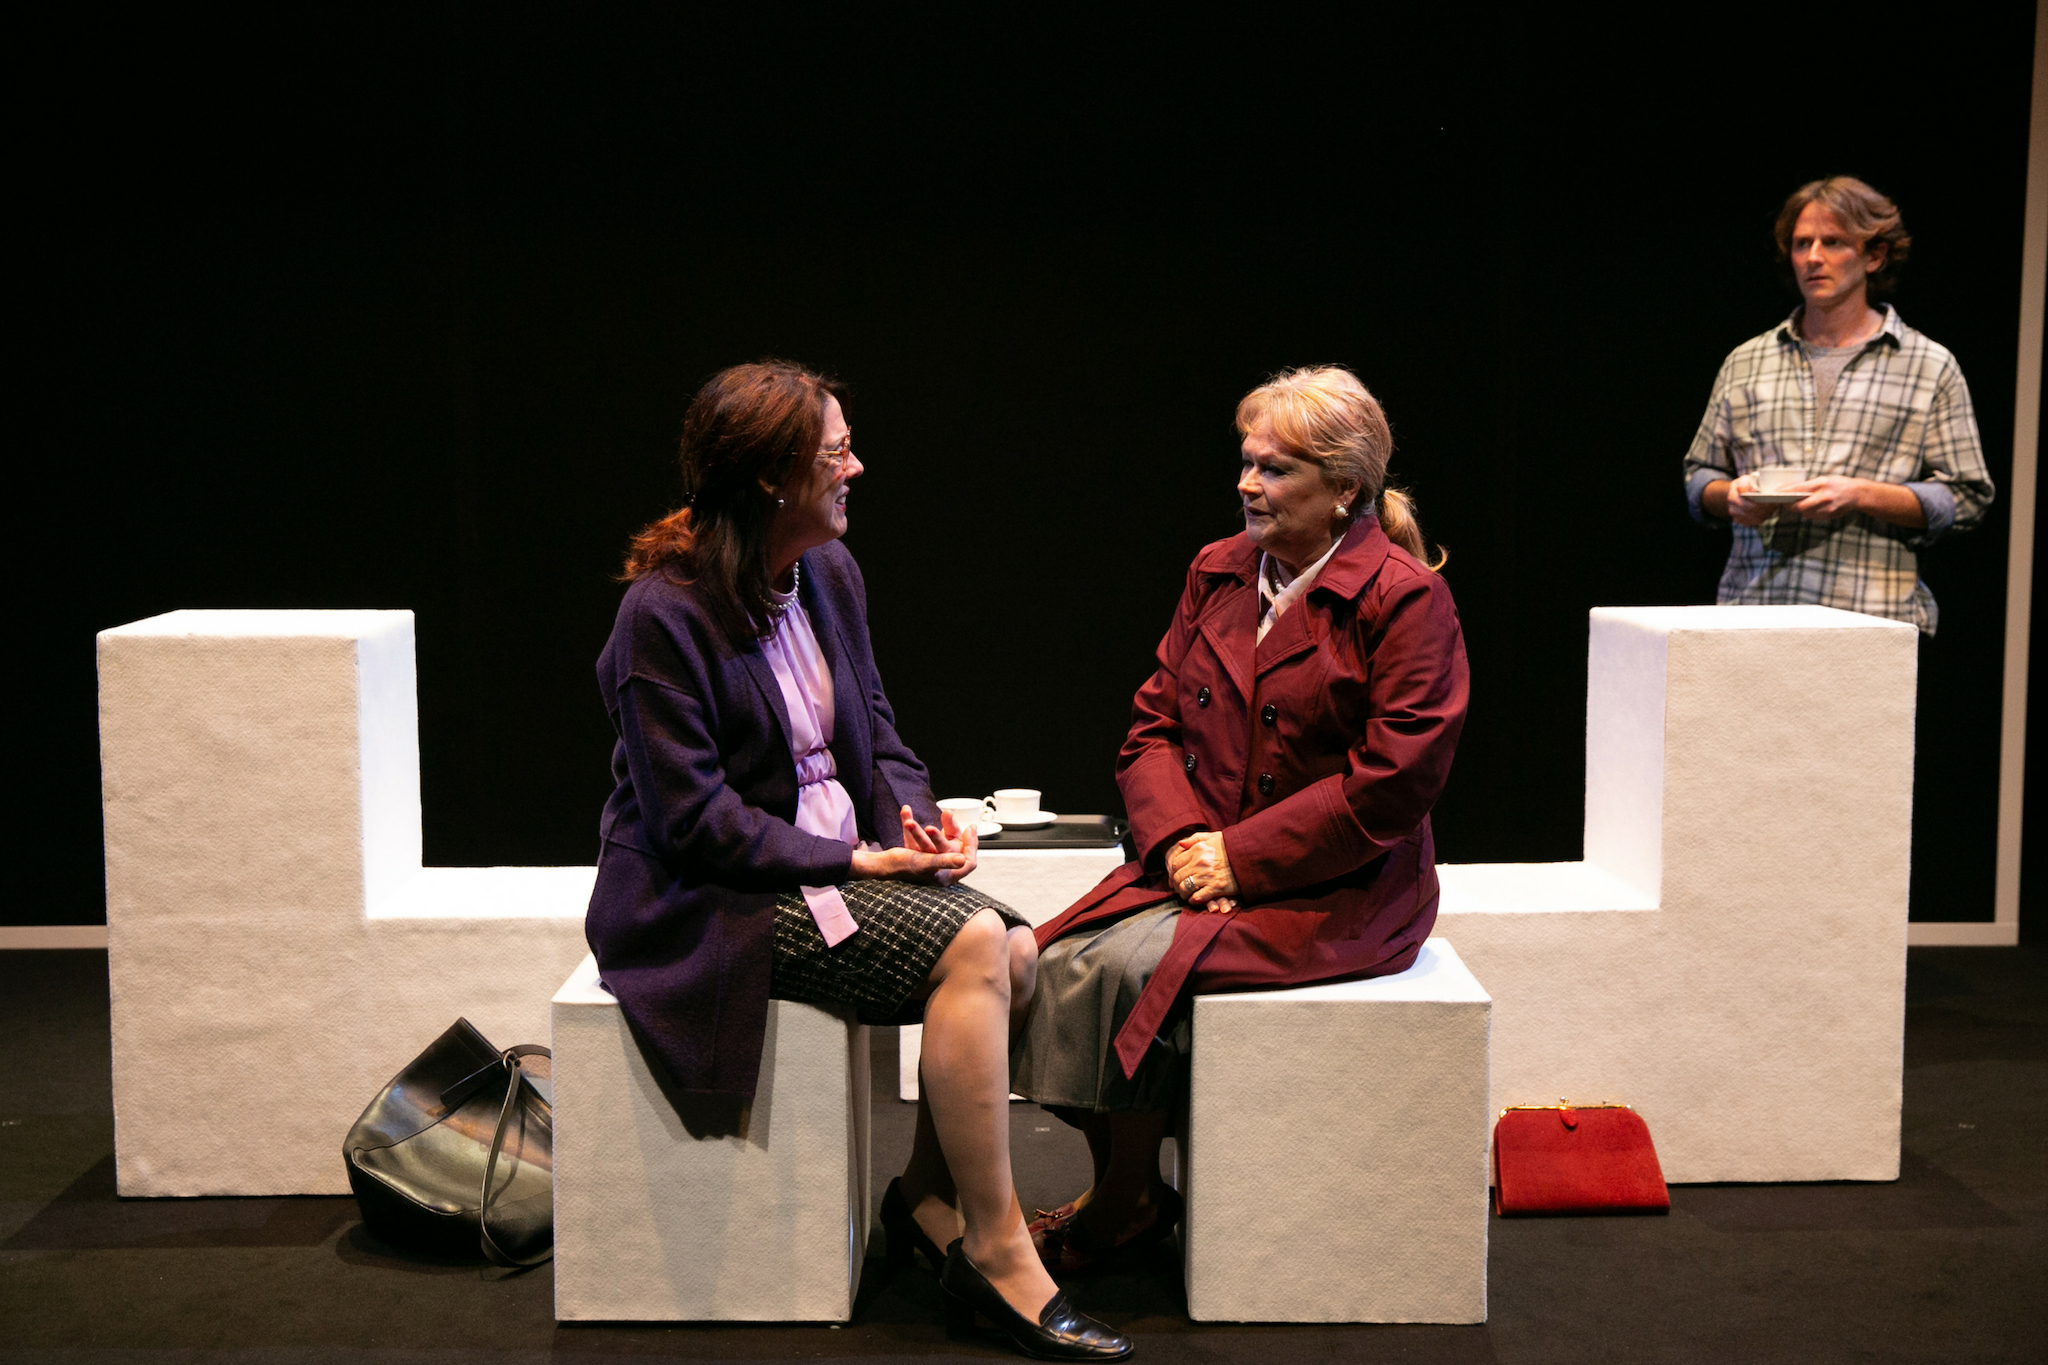 Maureen Keiller (Mrs. Oliver) and Karen MacDonald (Mrs. Plant) in Blue Kettle, 2018-Photo by Evgenia Eliseeva